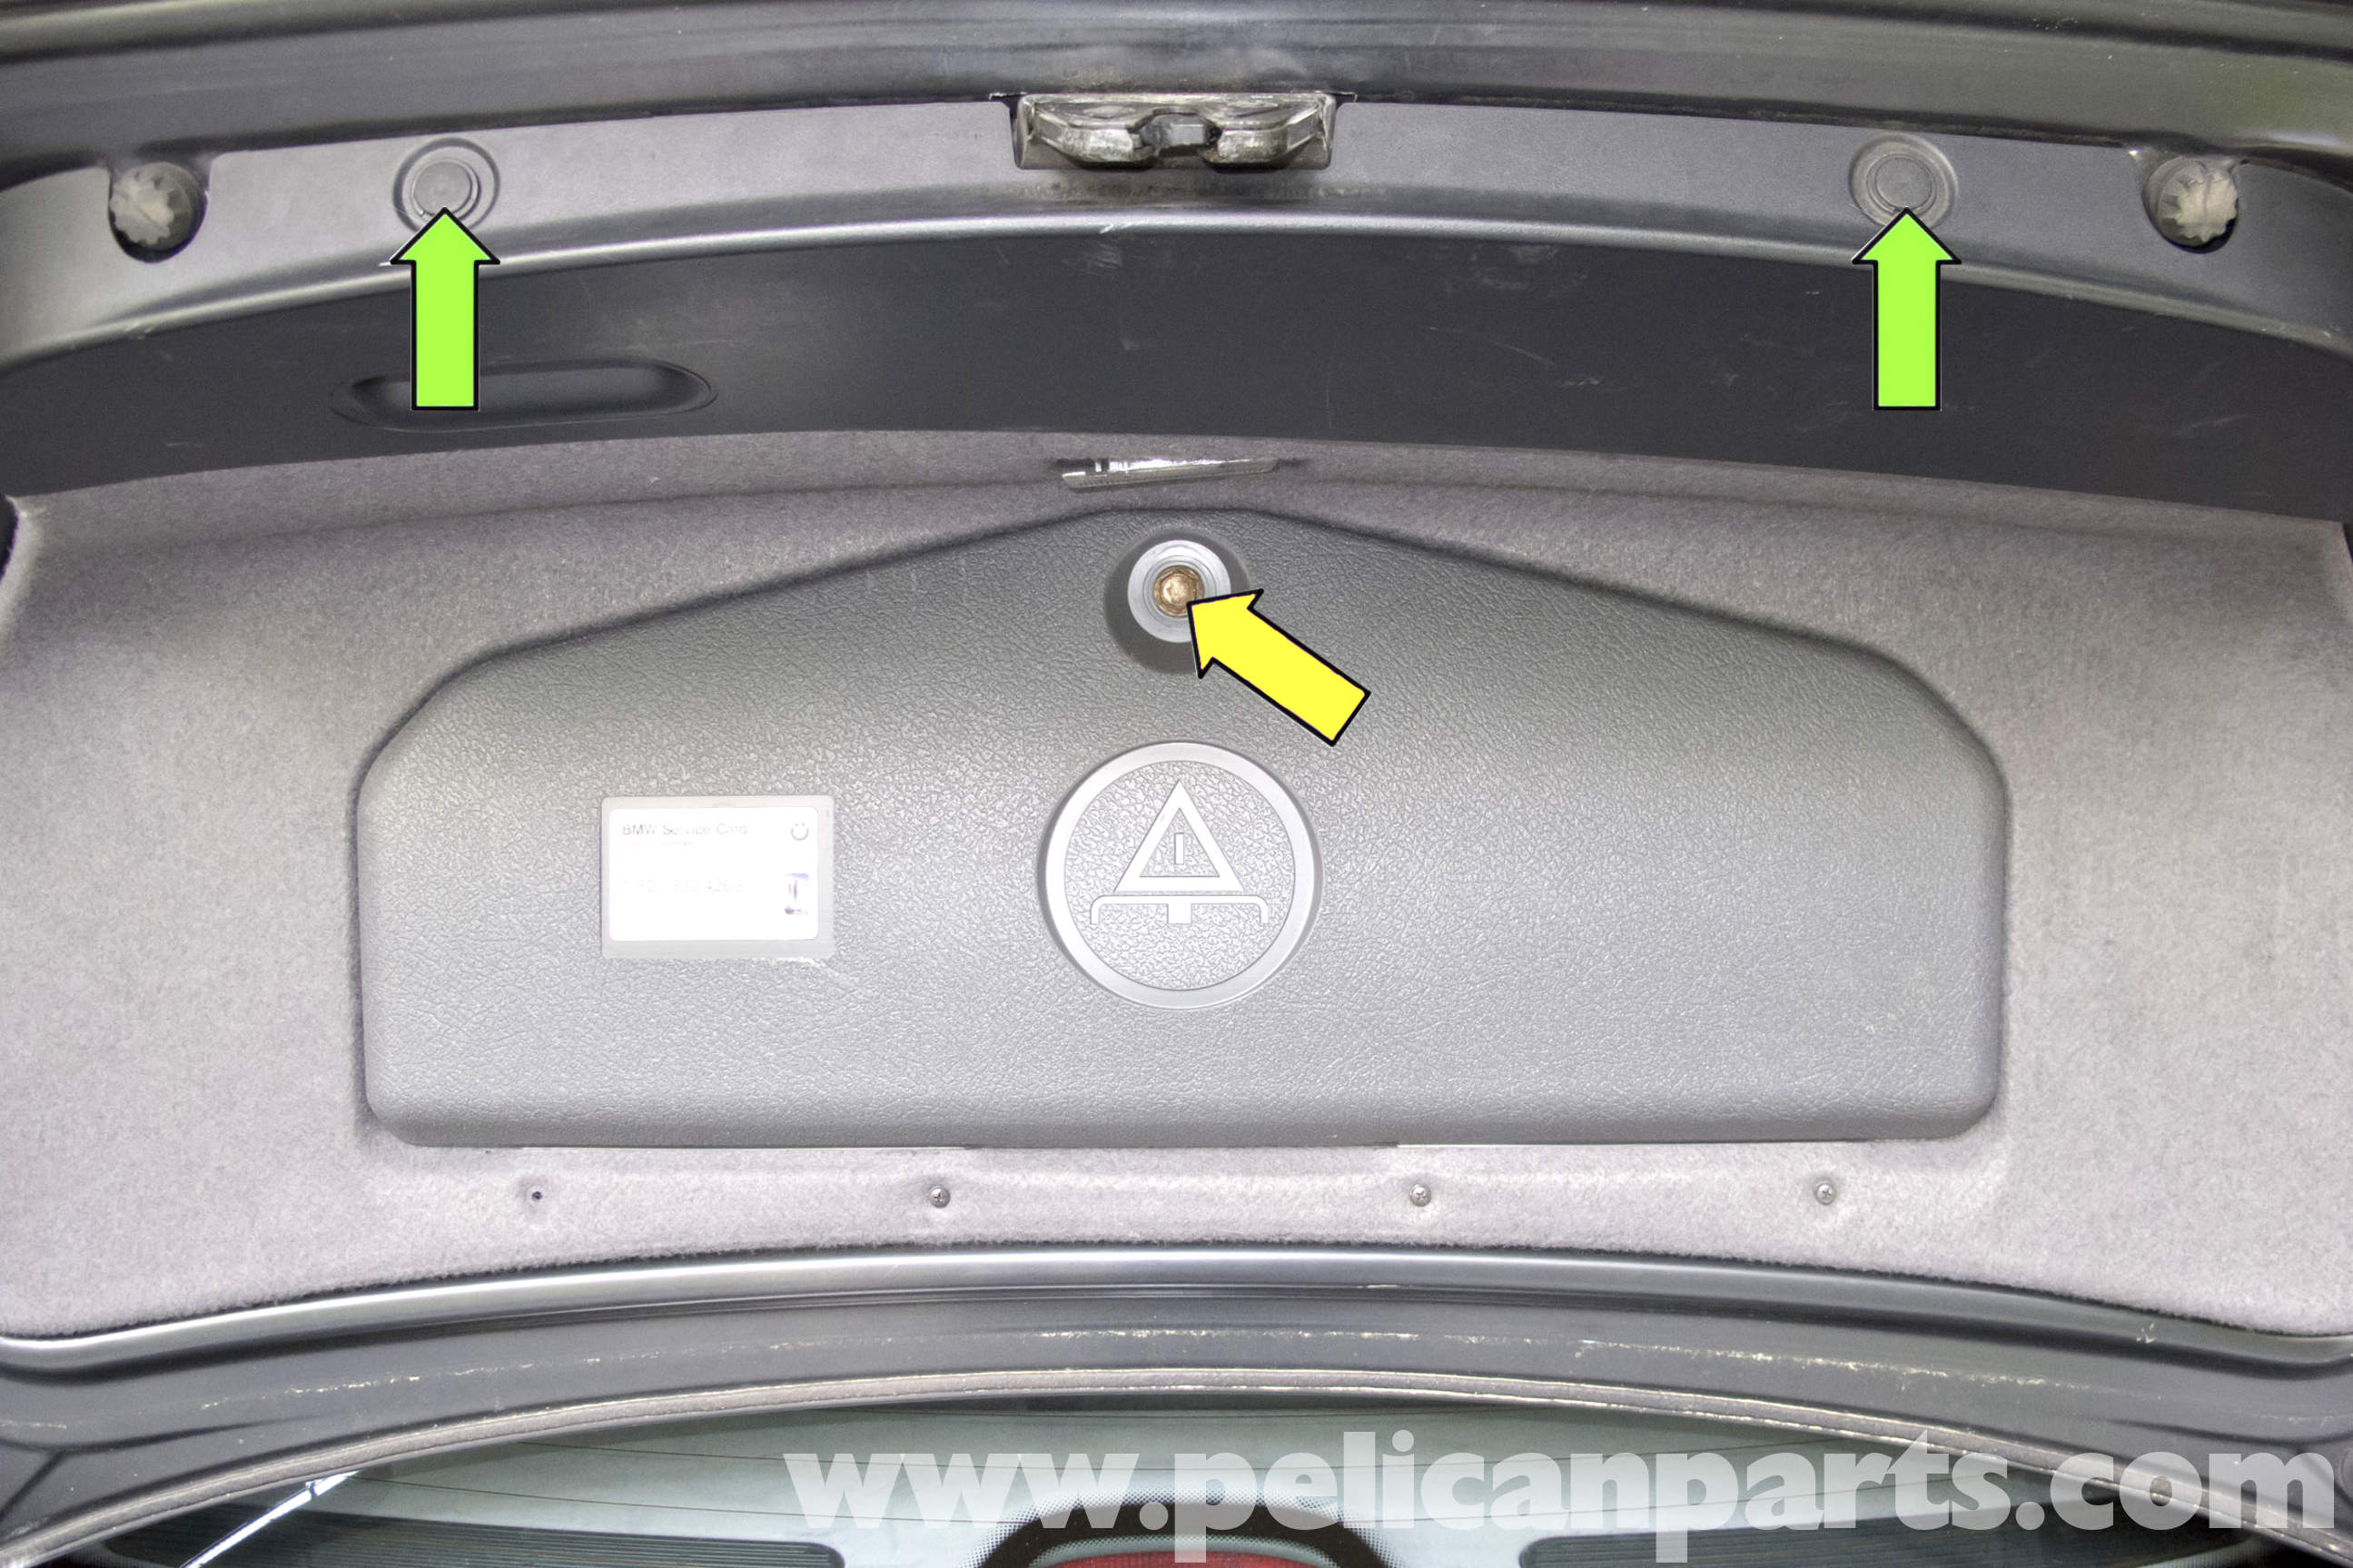 Trunk Popper Wiring Diagram Bmw E39 5 Series Latch Testing And Replacement 1997 2003 Large Image Extra